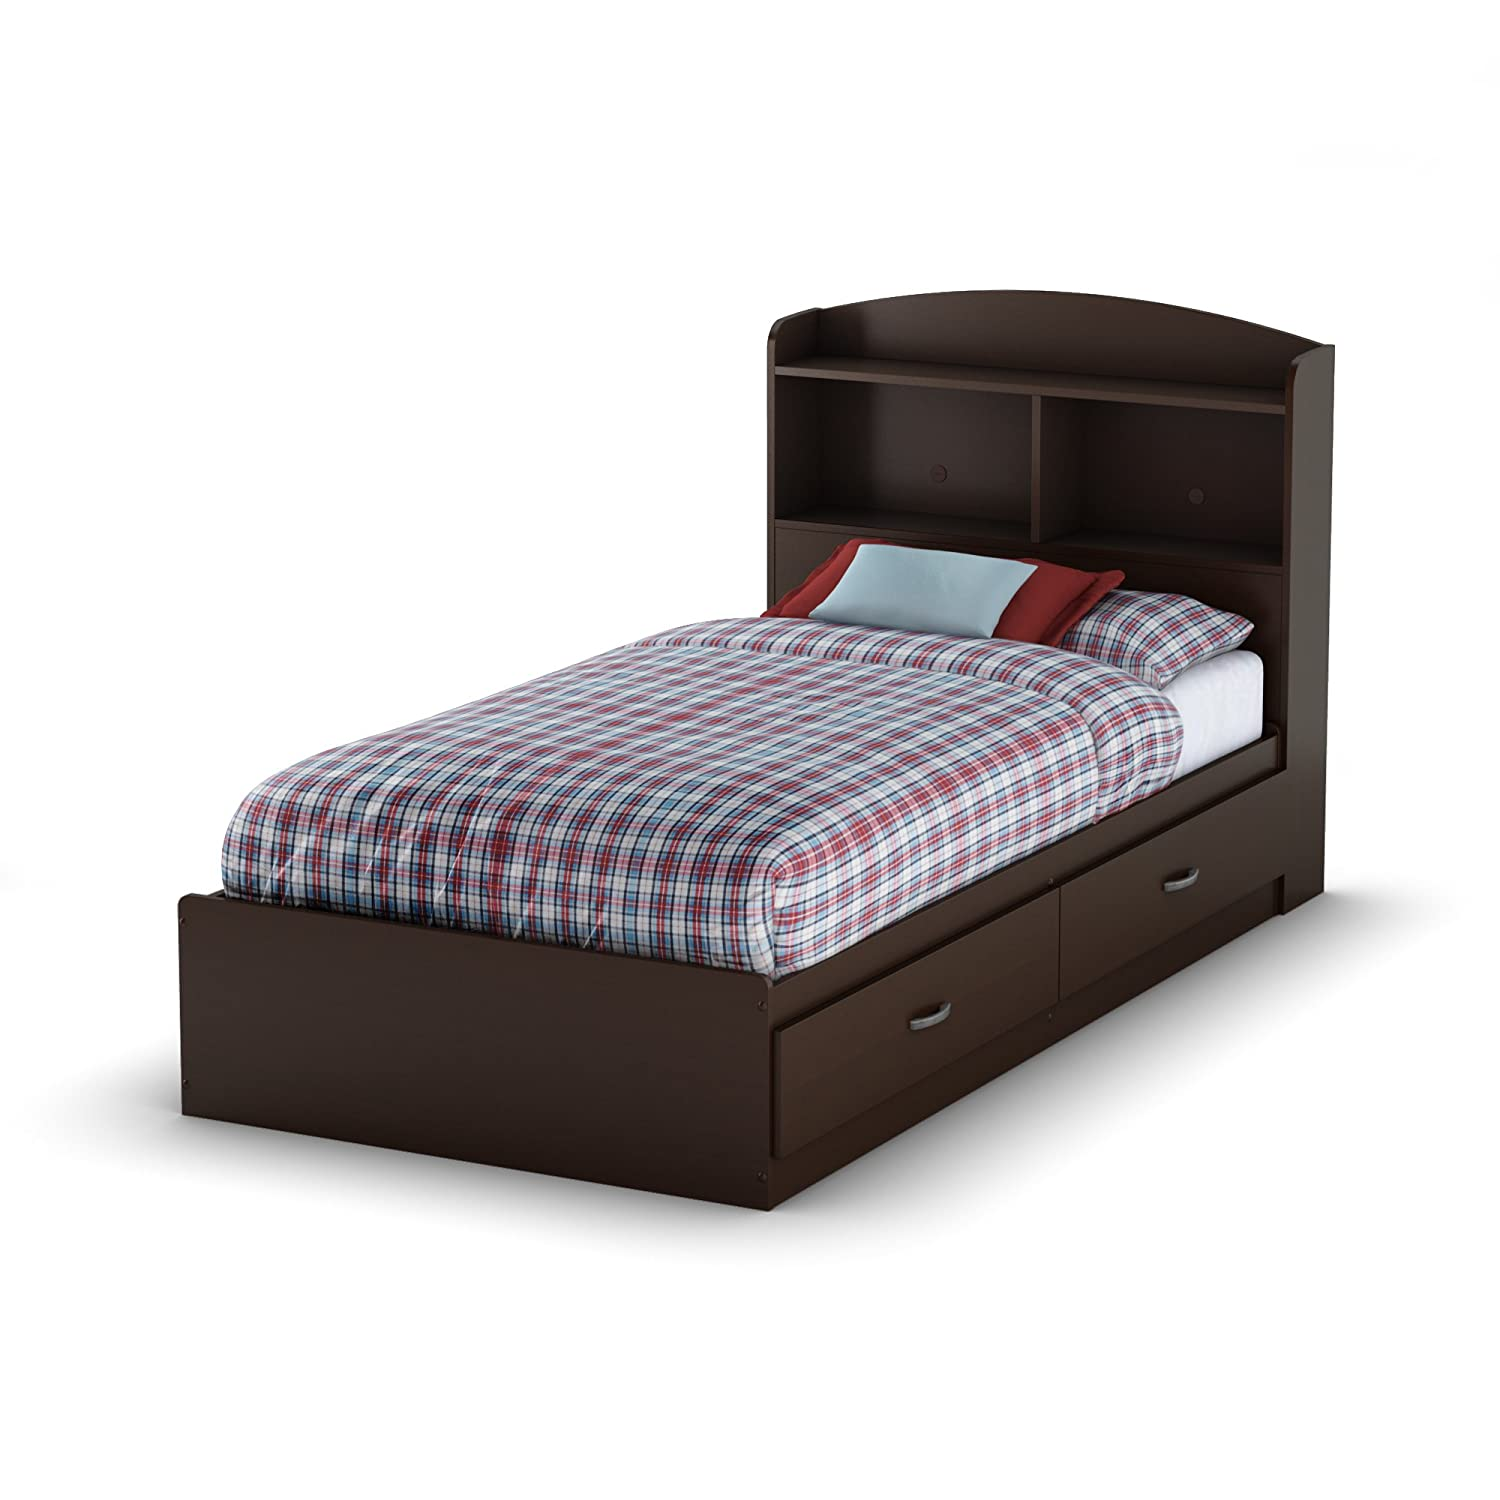 south shore furniture logik collection twin mates bed chocolate  - south shore furniture logik collection twin mates bed chocolateamazonca home  kitchen